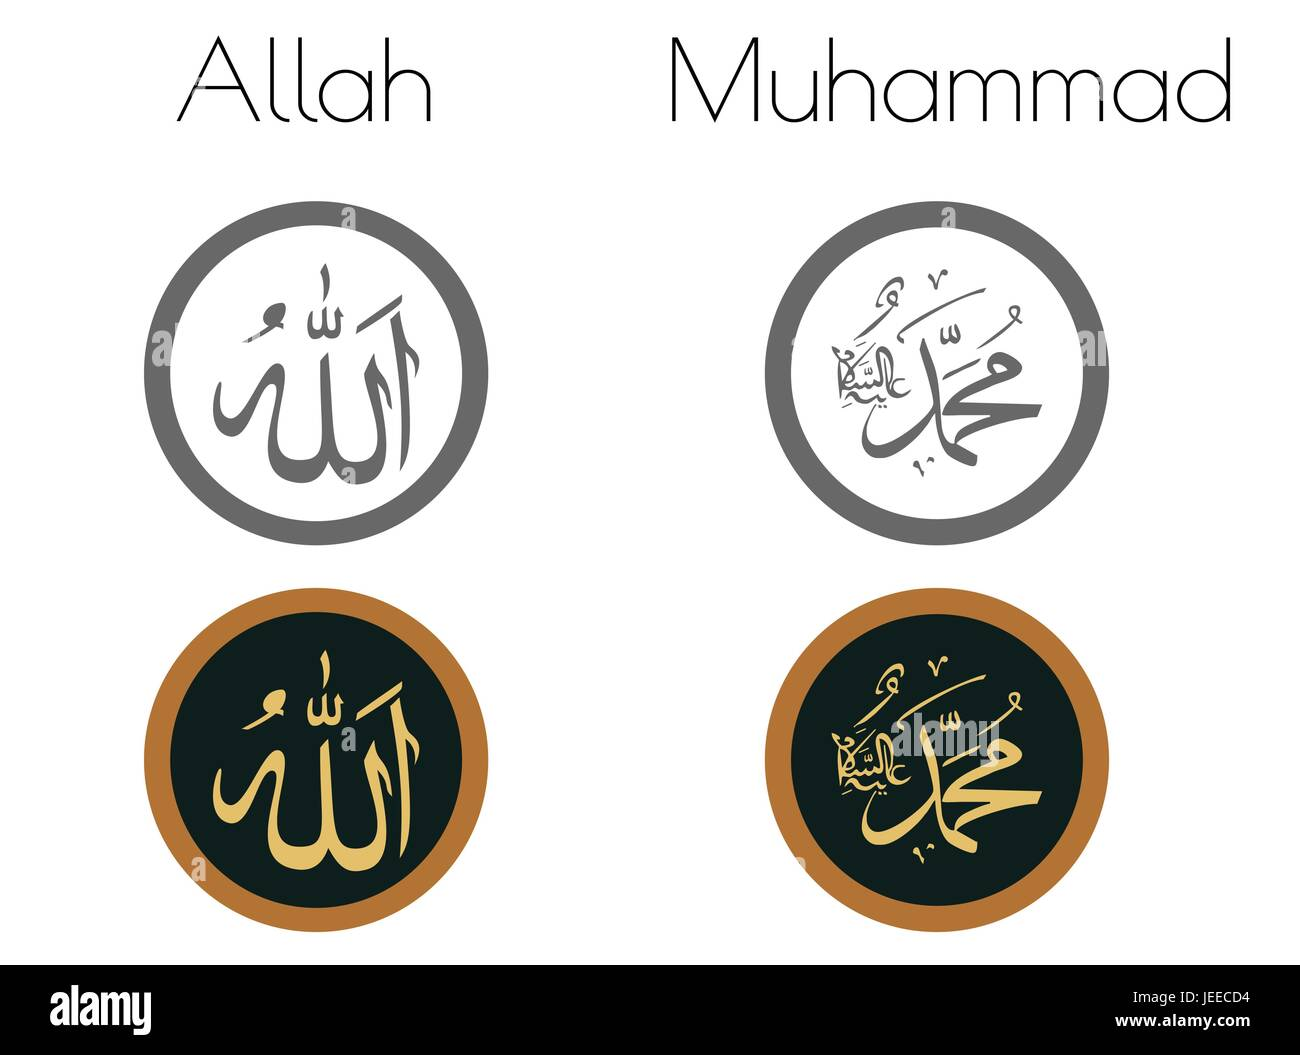 EPS 10 vector illustration of Allah & Muhammad words on white background - Stock Image